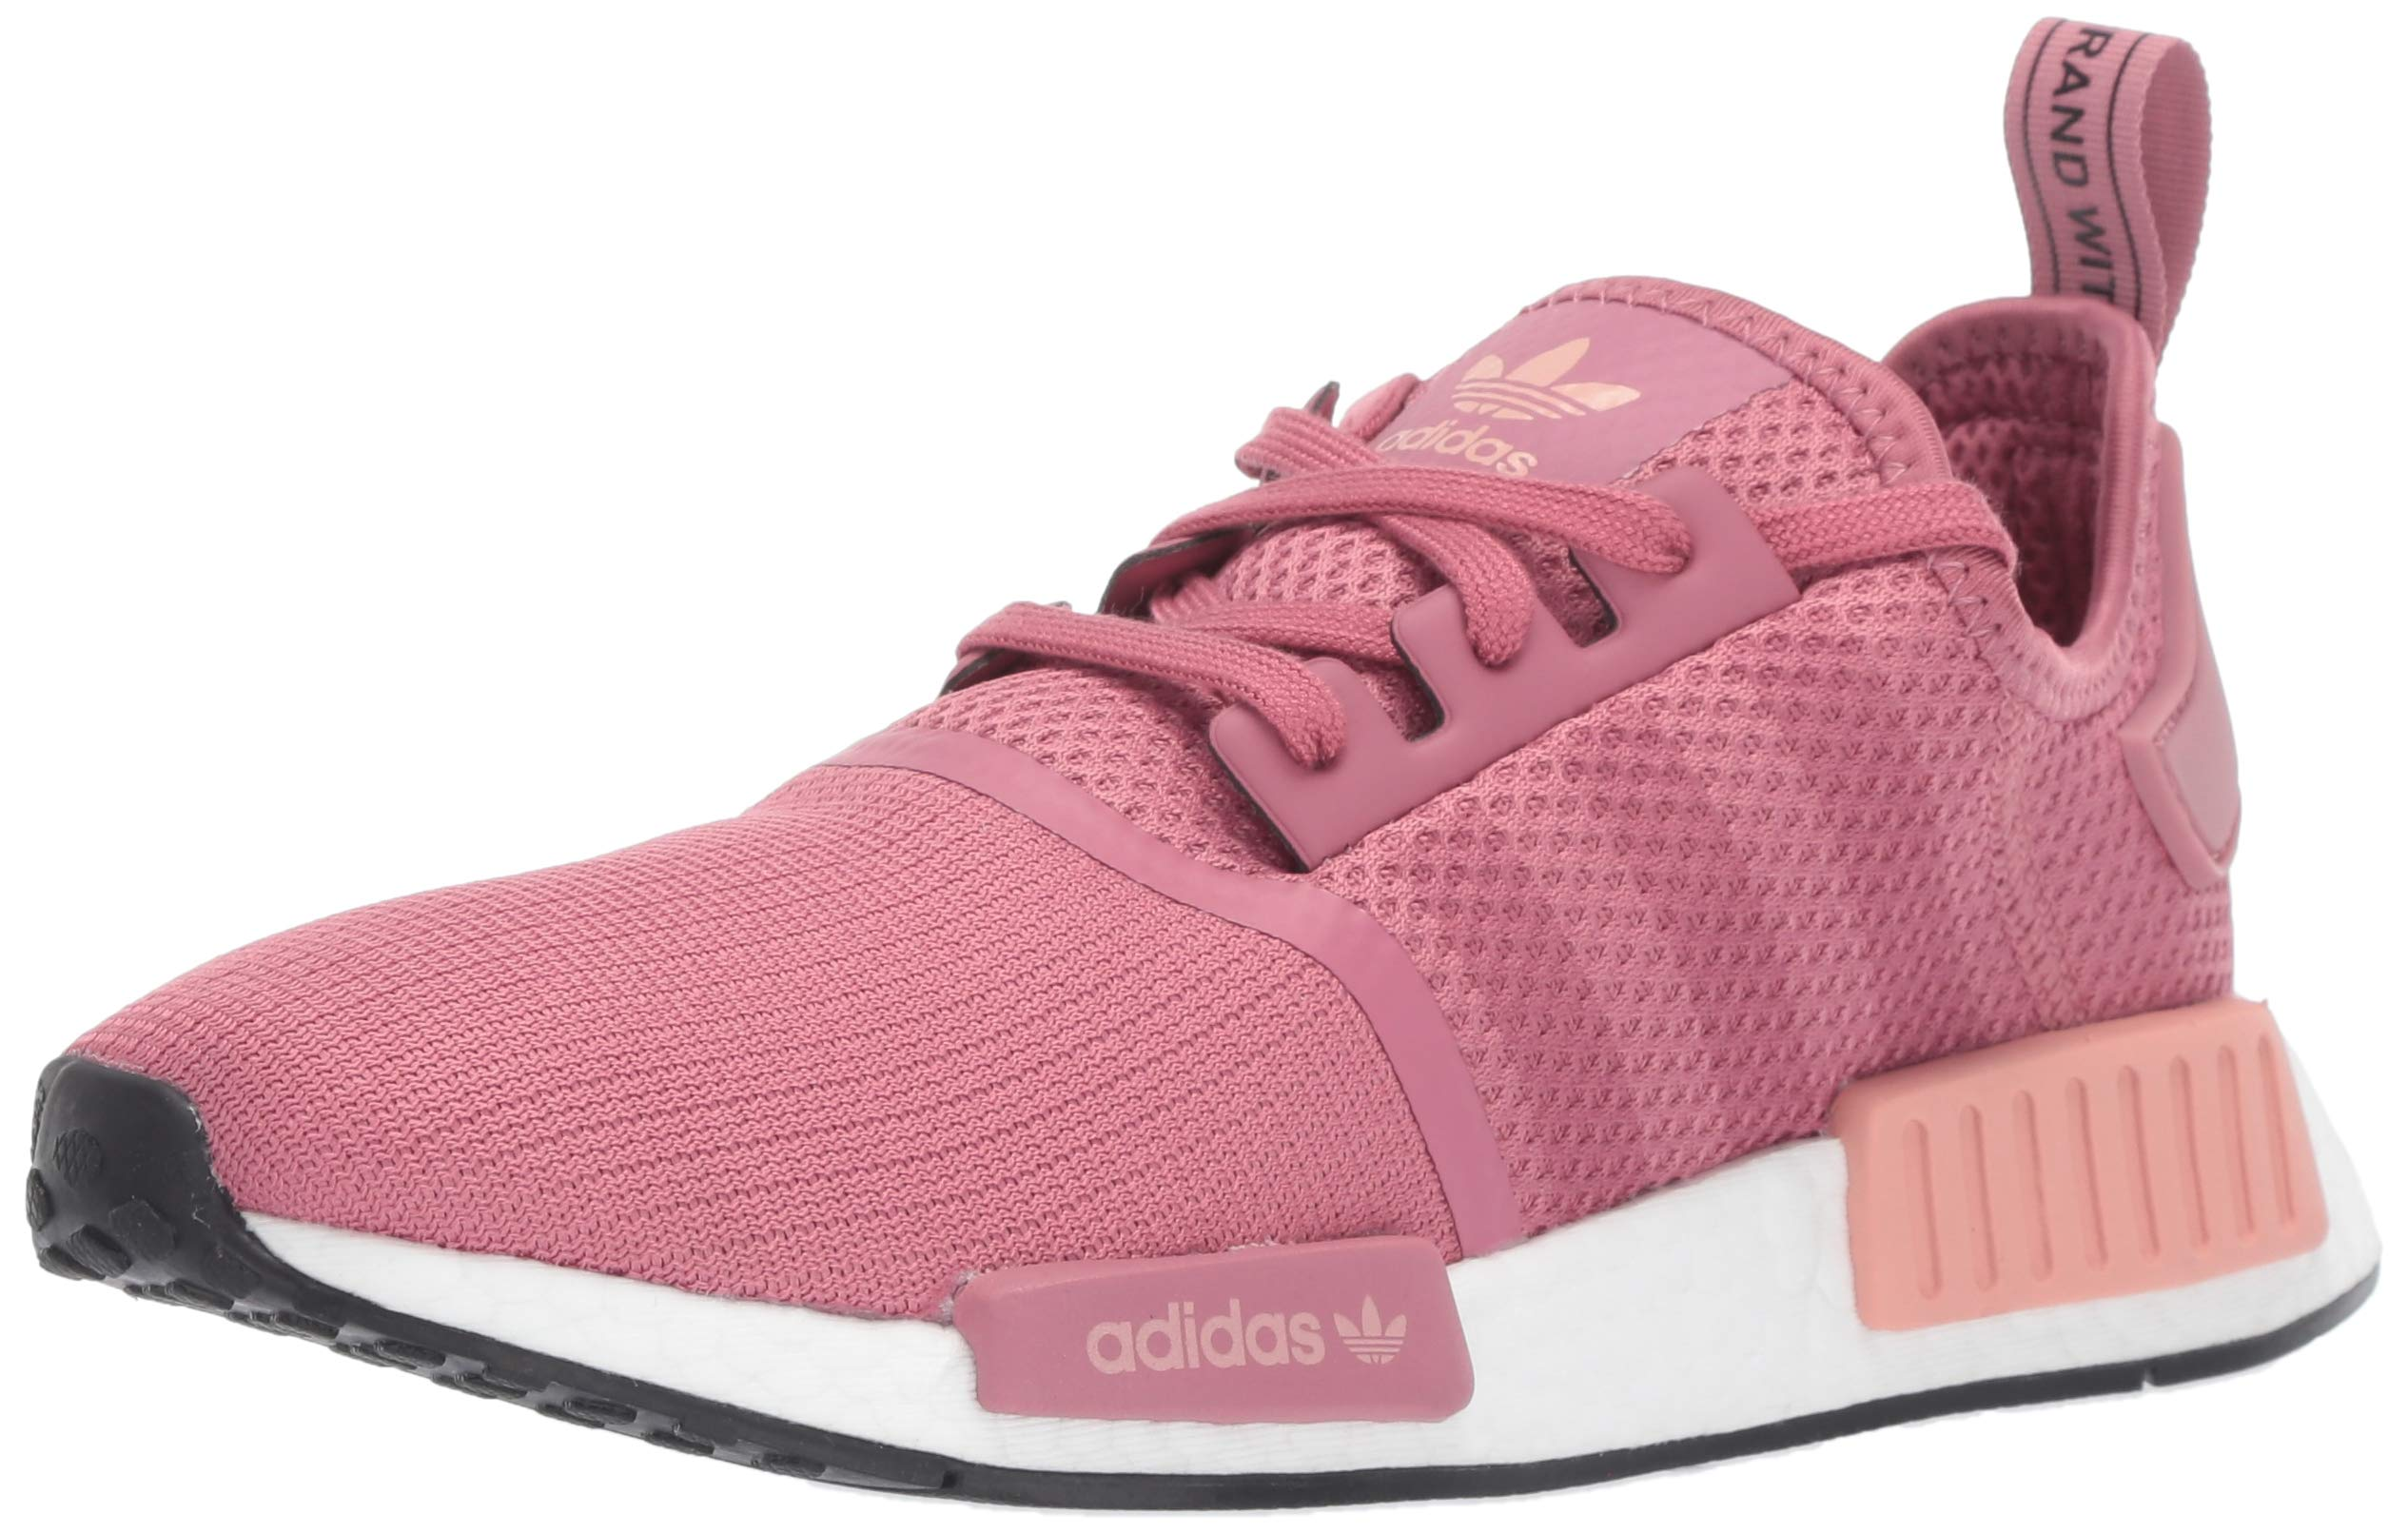 adidas Originals Women's NMD_R1 Running Shoe, Maroon/Trace Pink, 5 M US